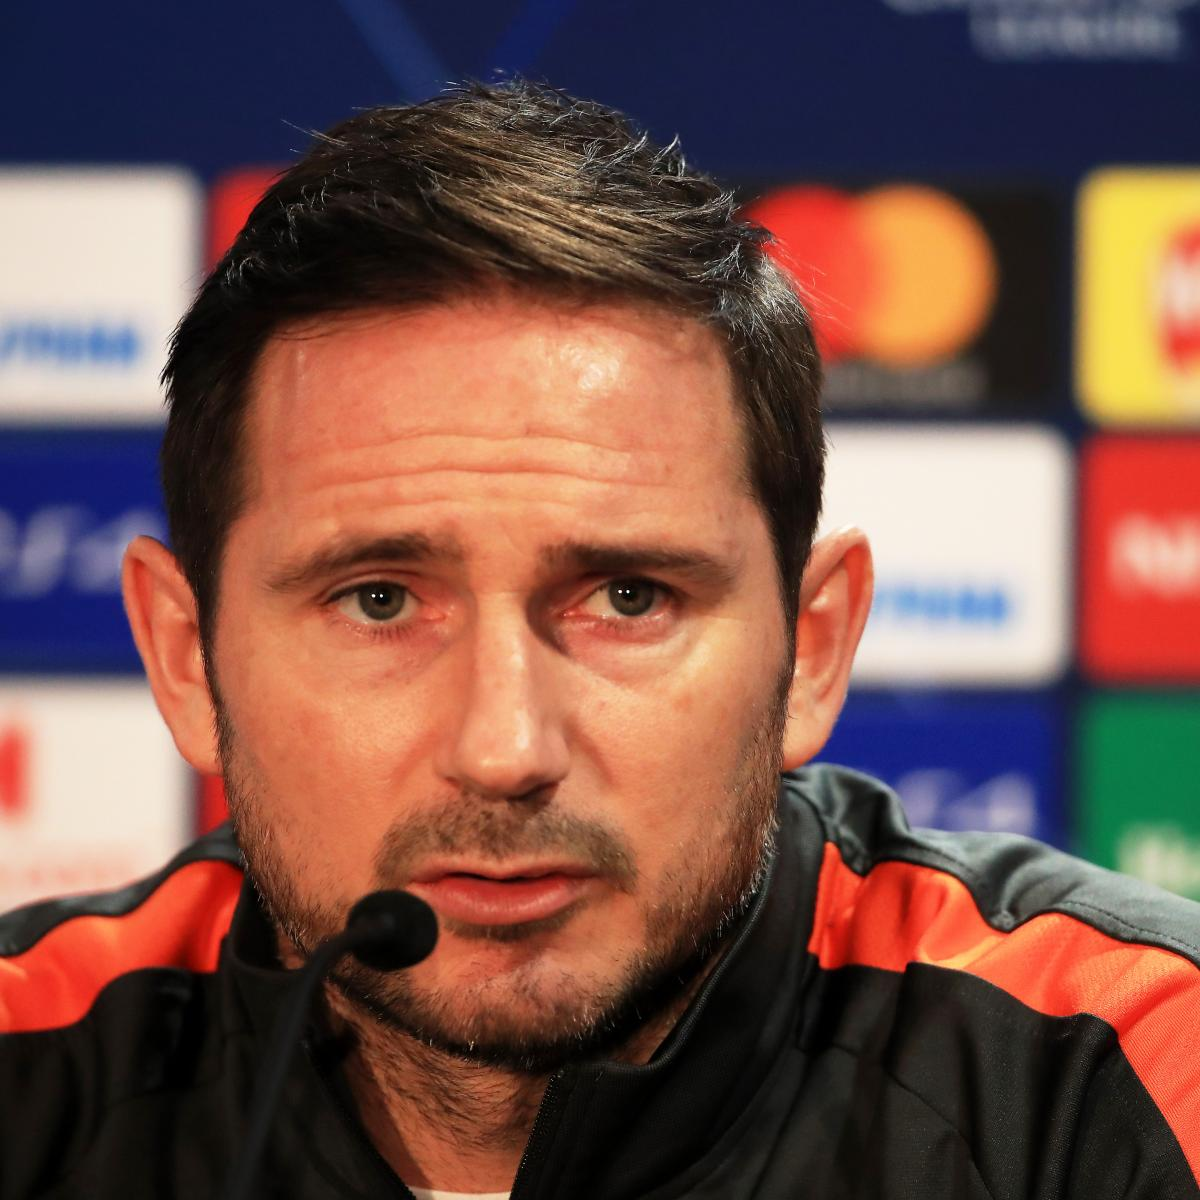 Frank Lampard Says Chelsea Can 'Overcome Being the Underdog' vs. Bayern Munich